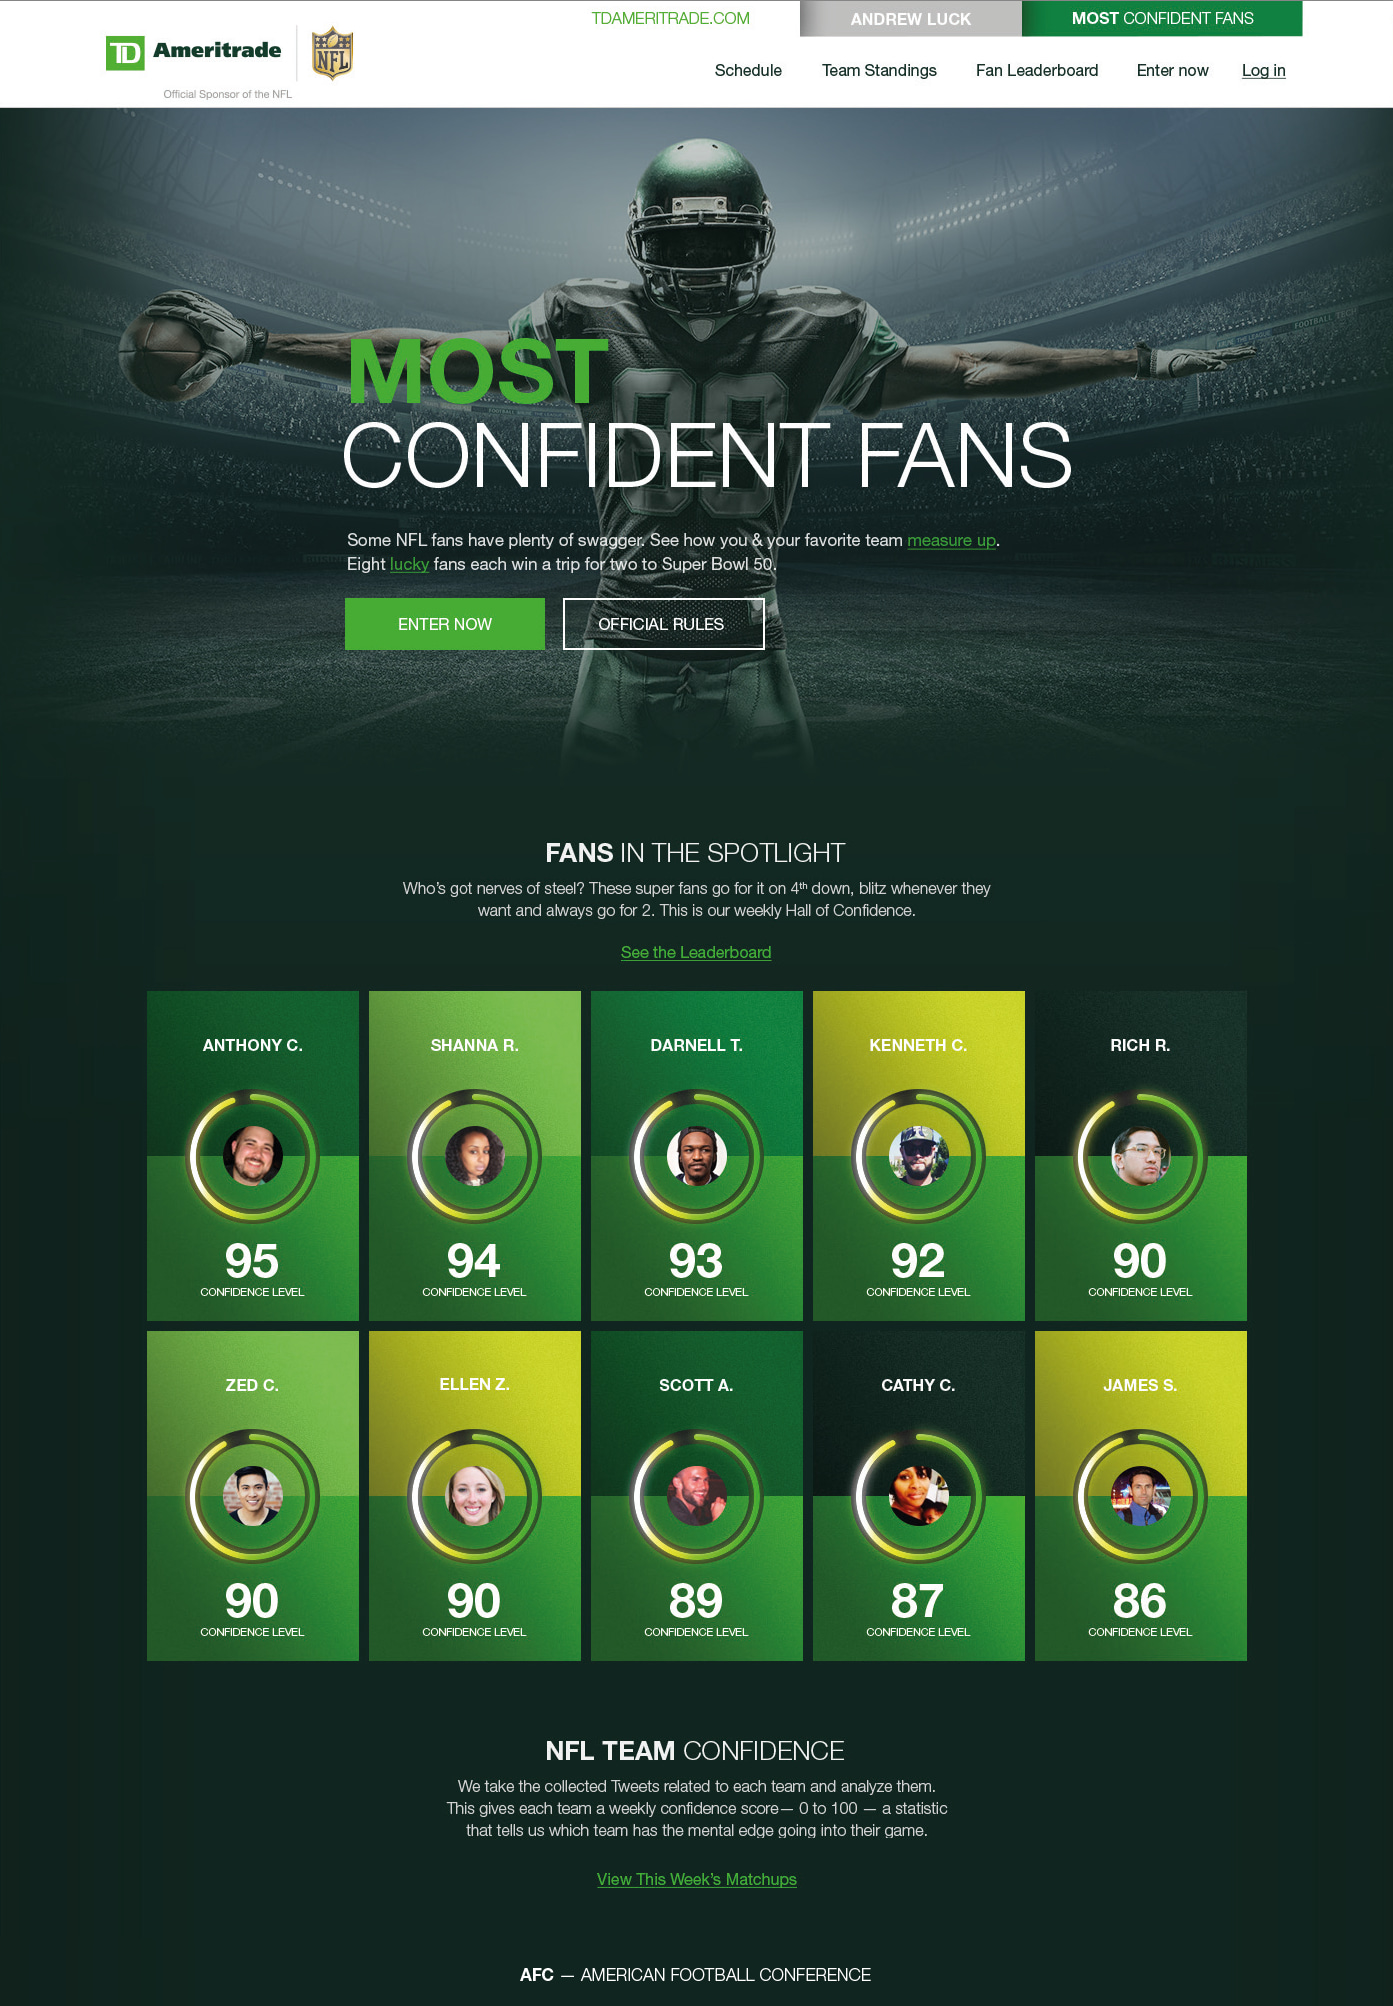 TD Ameritrade Most Confident Fans - WNW